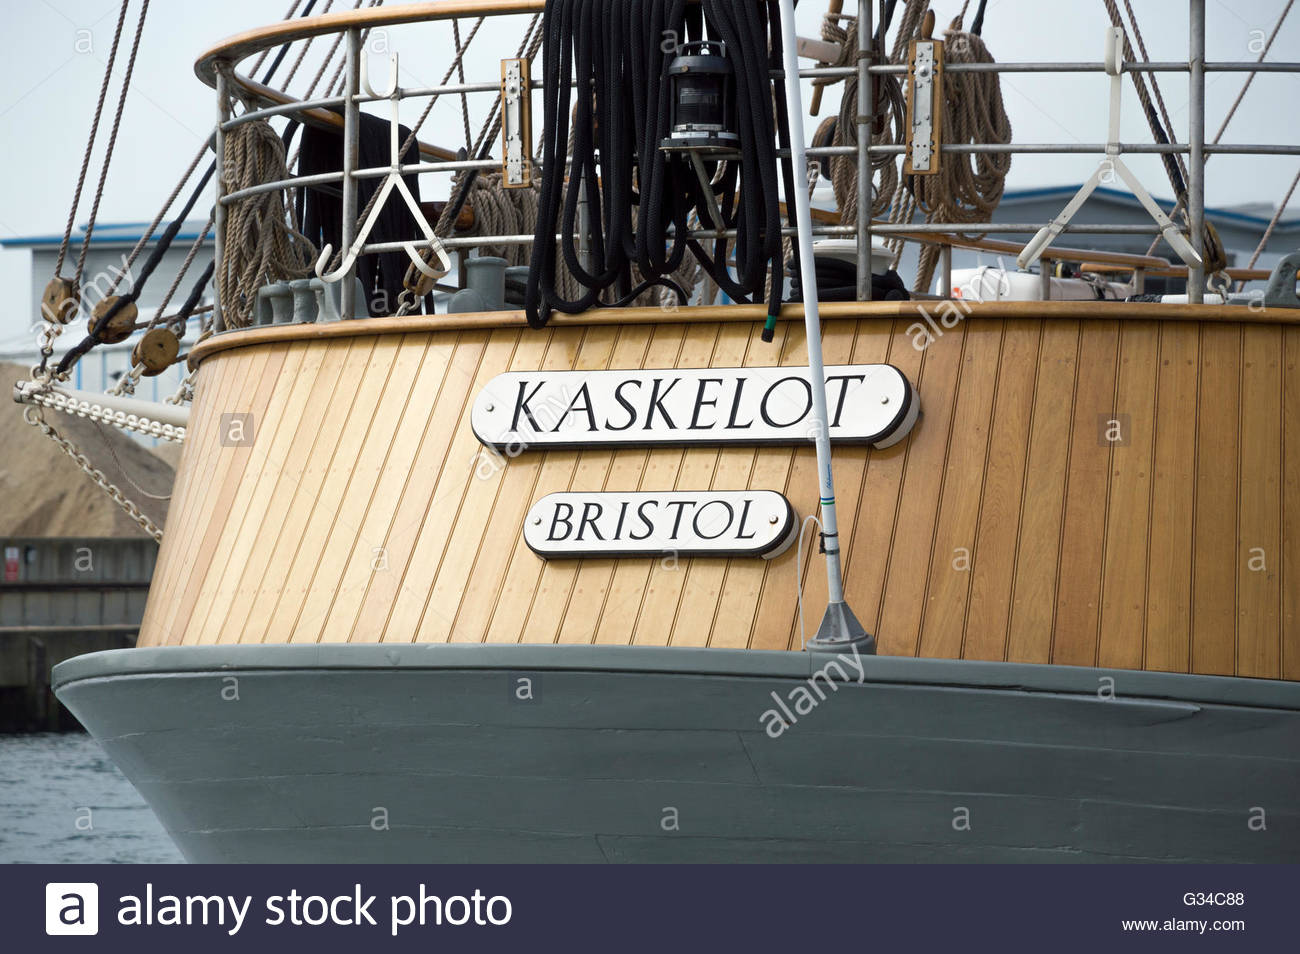 Kaskelot, Bristol - signs on the stern of the tall ship moored in Poole Harbour, Dorset, England Stock Photo